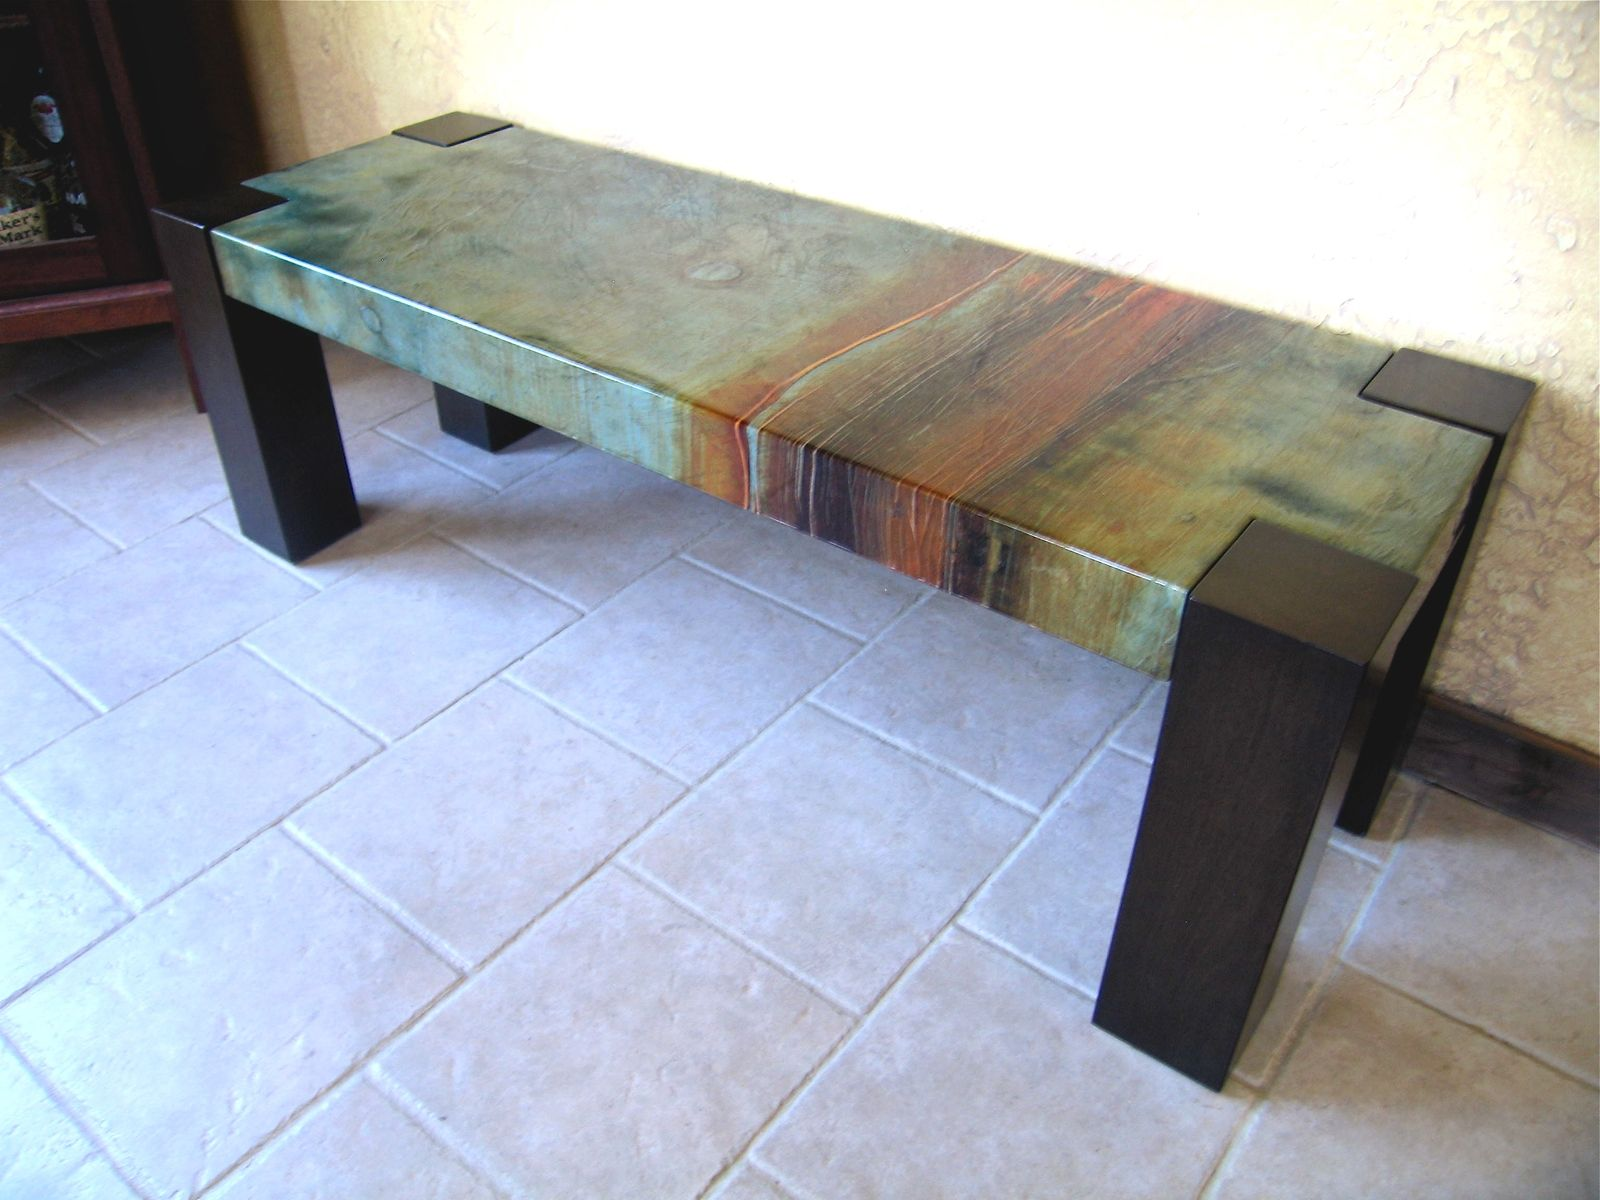 Custom Made Blender Art Bench Or Table By Brushaber Wood Design Woodworking Furniture Custom Benches Decor